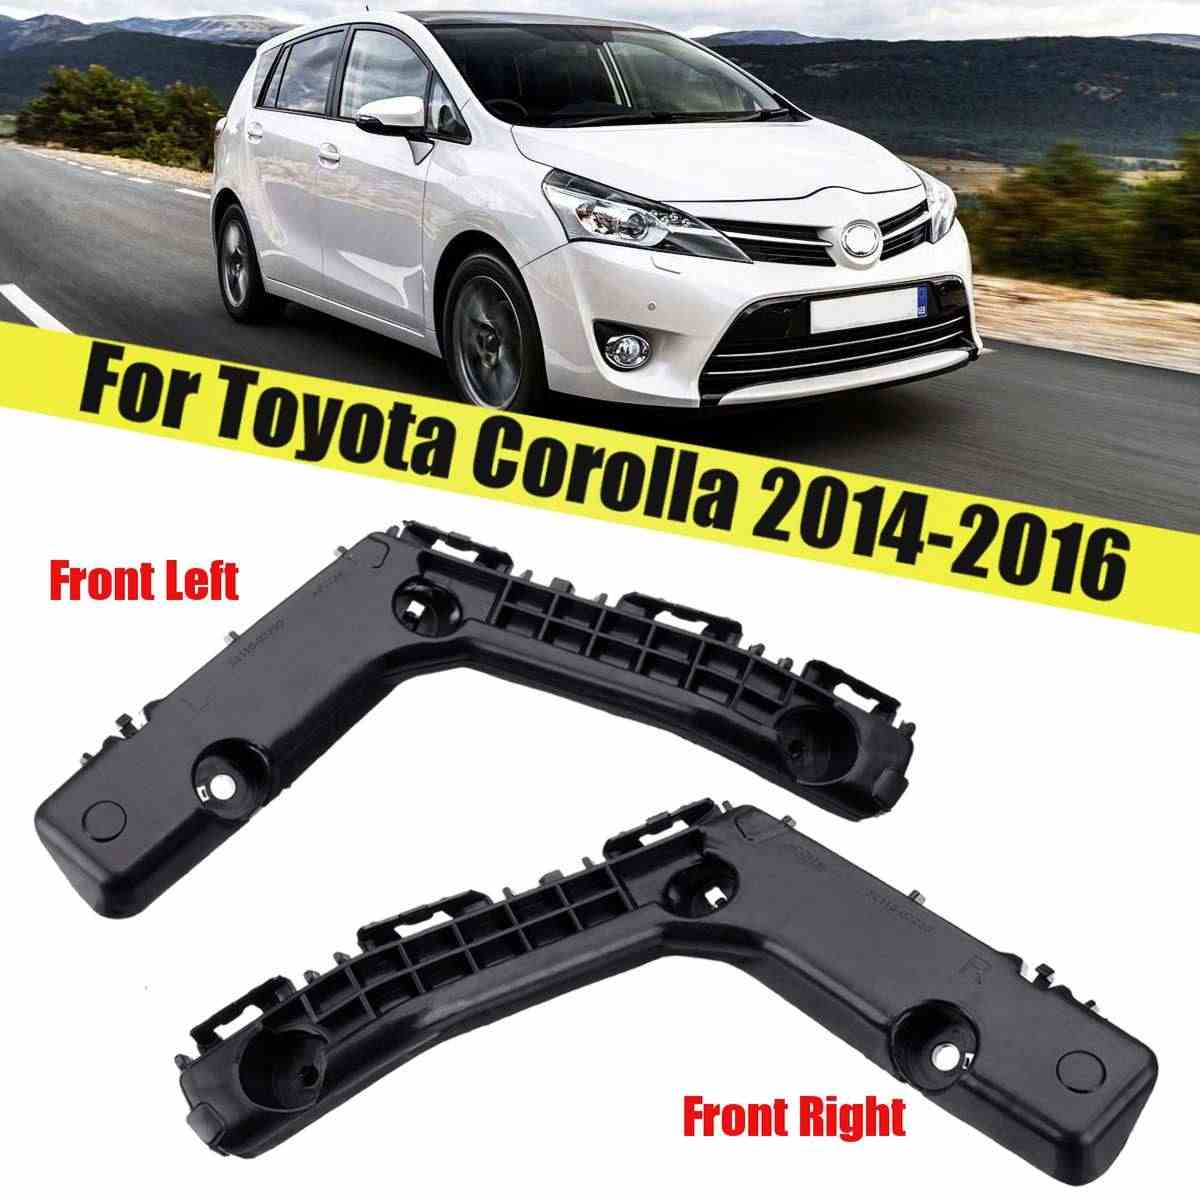 5211502240 Parts N Go 2014-2016 Corolla Bumper Bracket Front Passenger Side Right Hand RH TO1043123